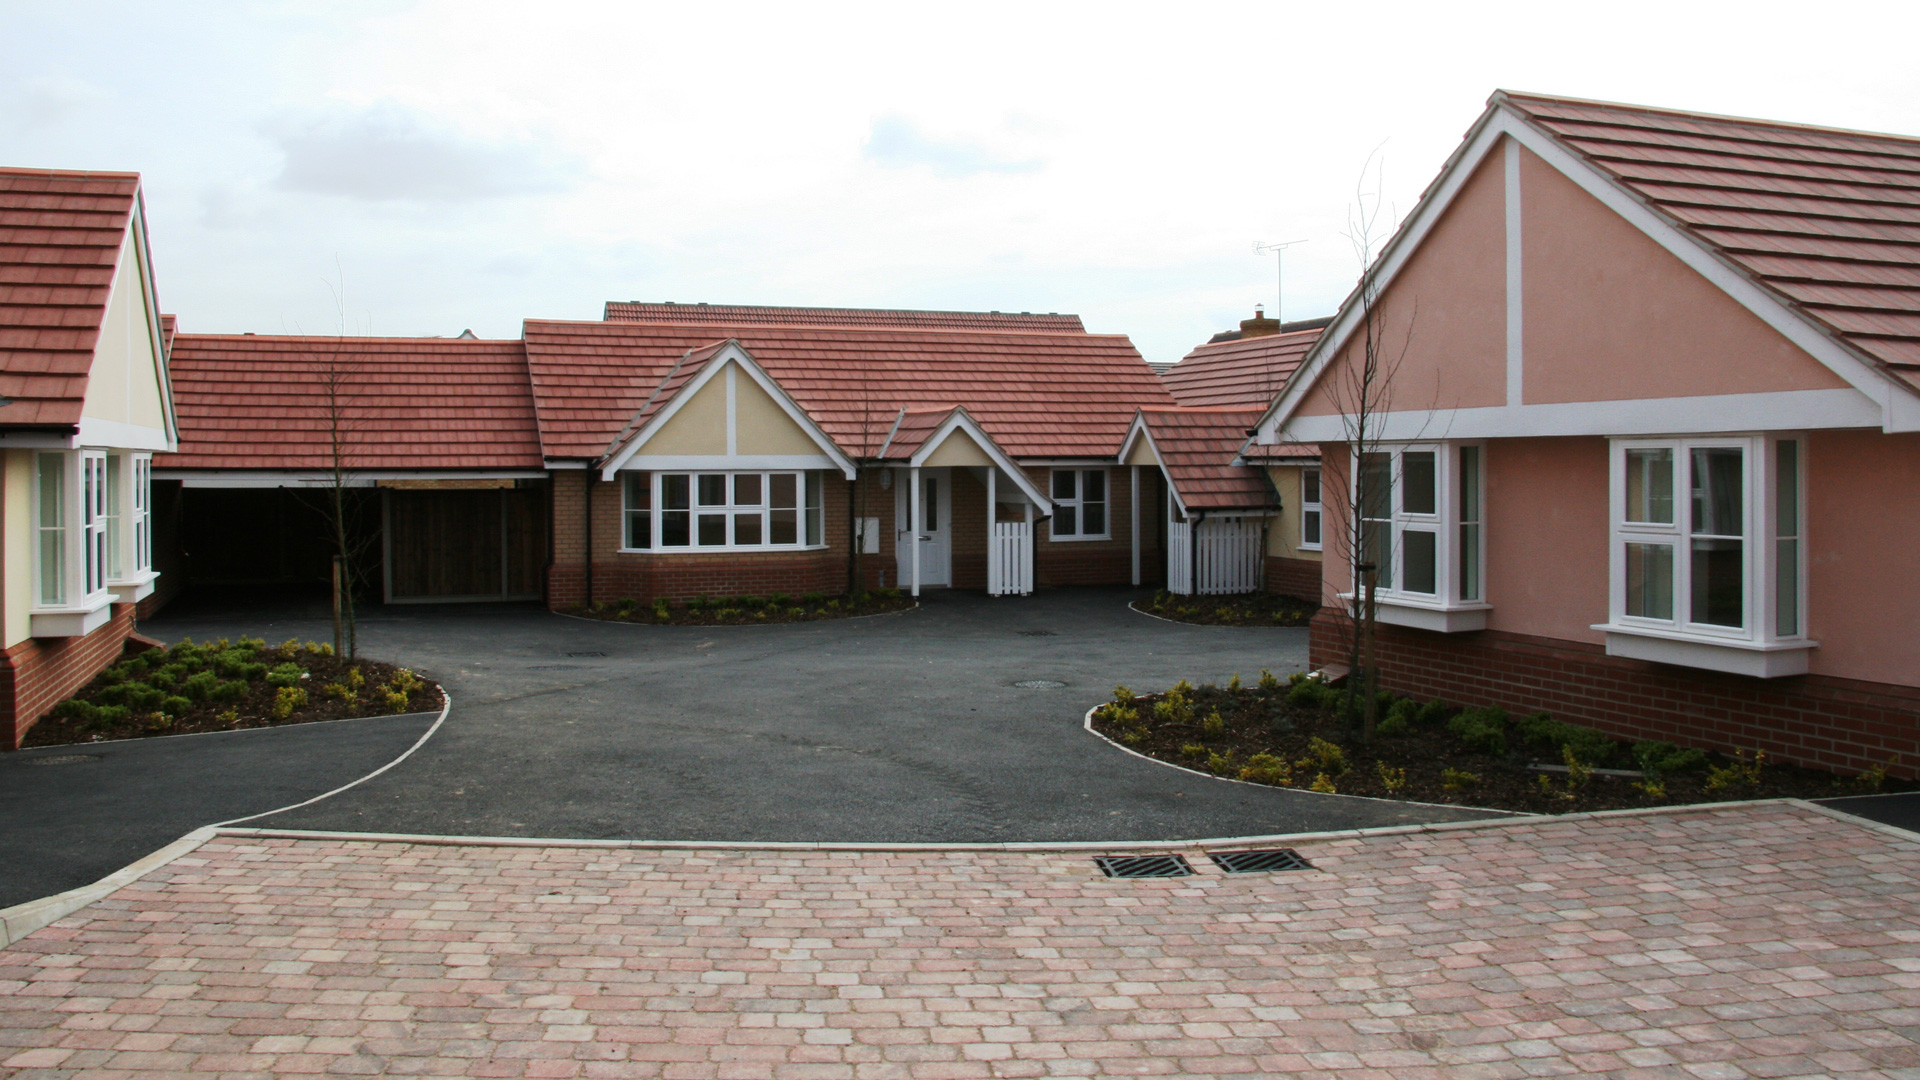 Priory Meadows, St Osyth – Phase 1 to 3